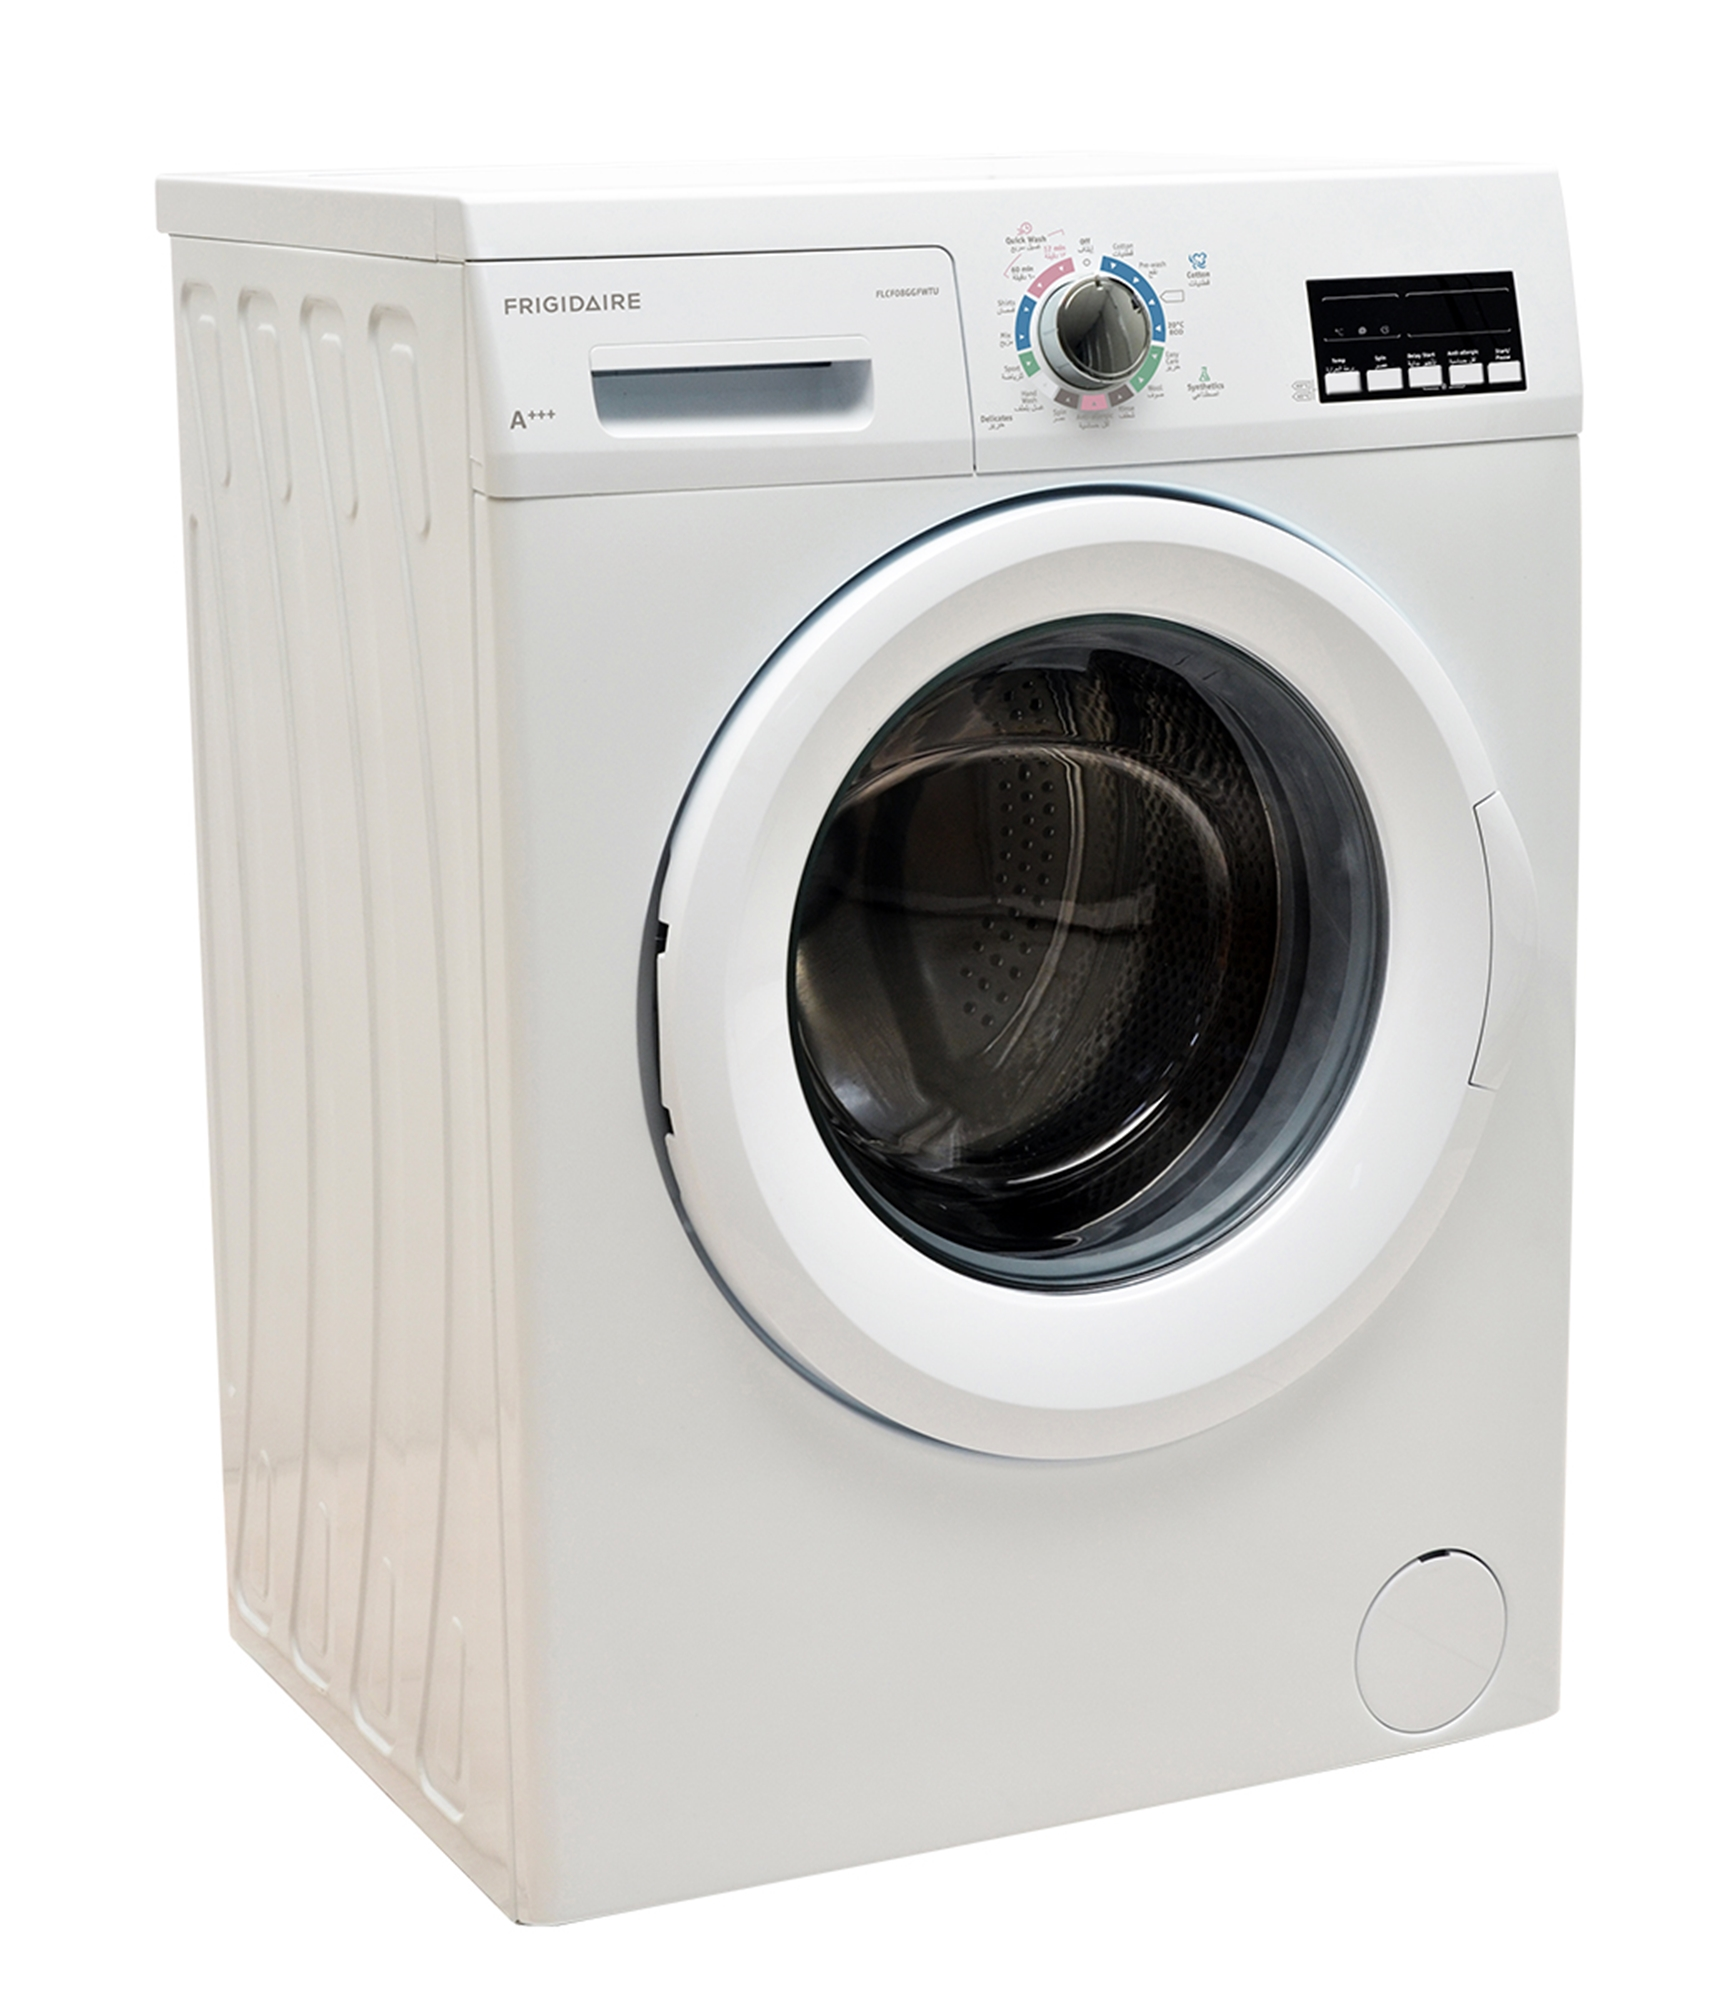 electrolux 9kg front loader. capacity (kg): 9, wash programs: 15. model: flcf09ggfwtu. the flcf09 front load washer with 9kg electrolux loader